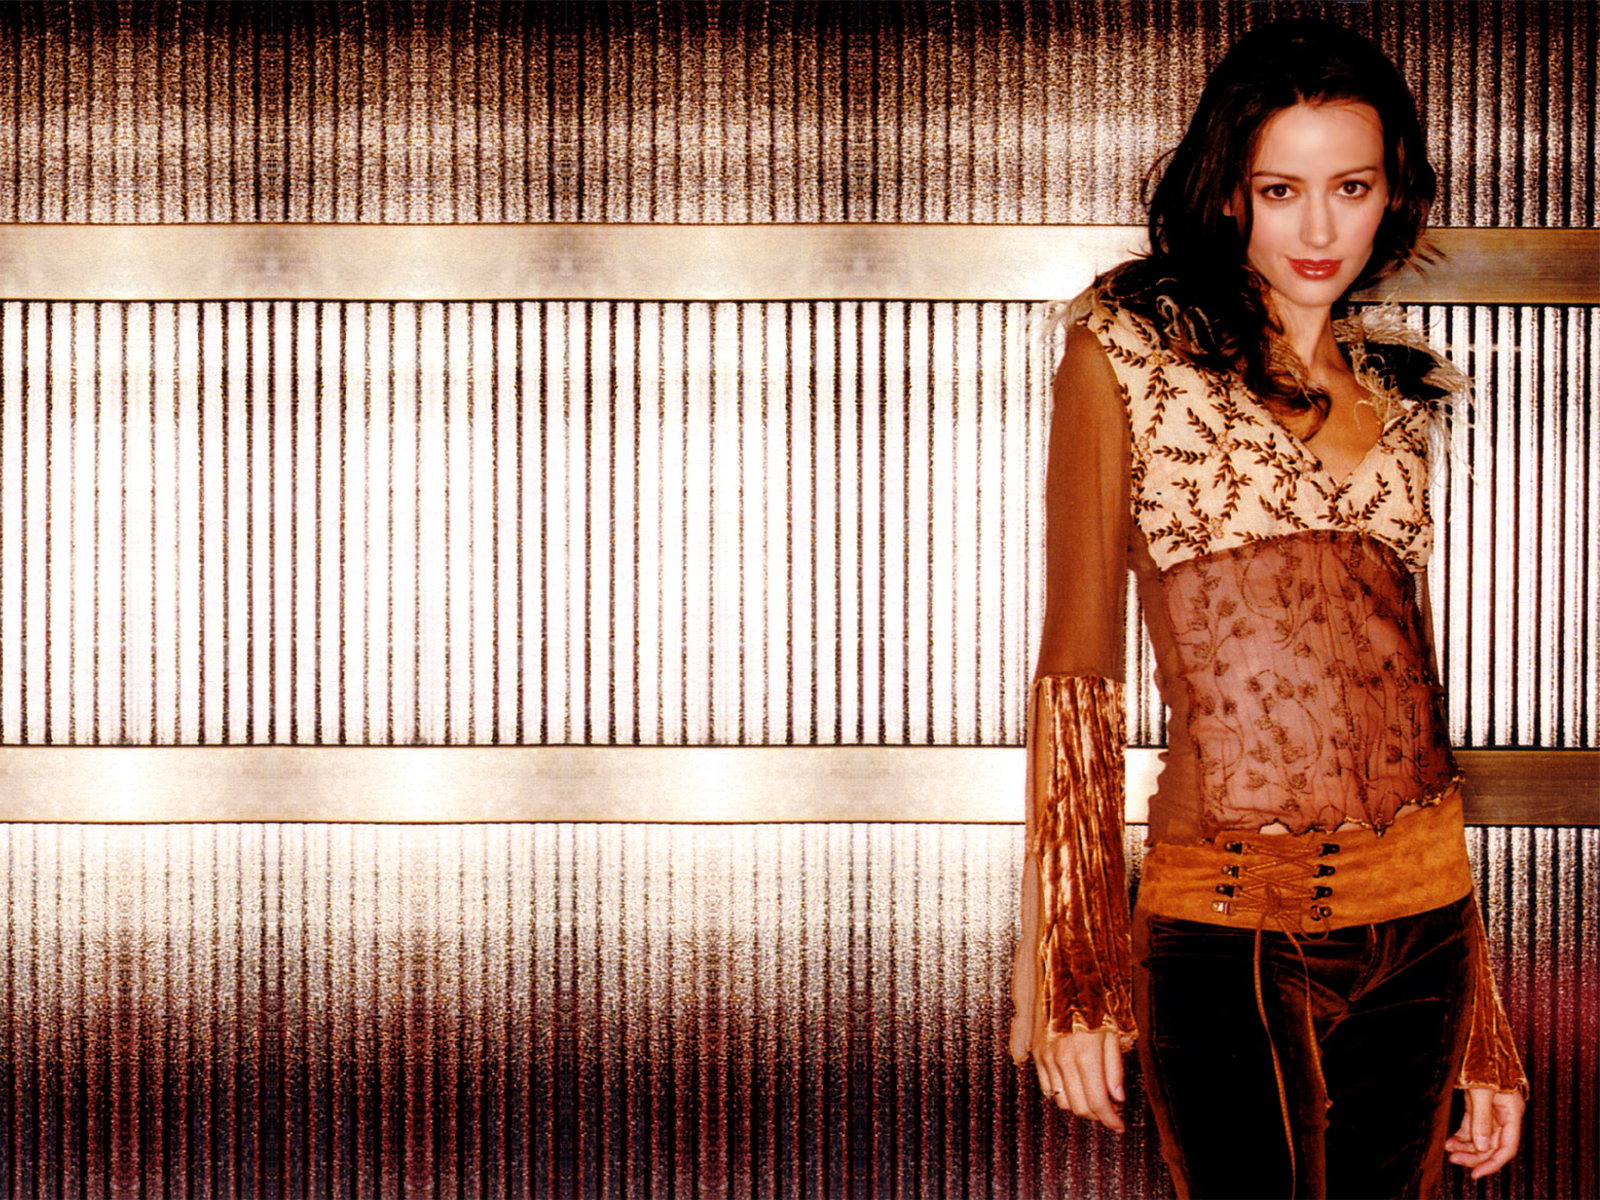 Amy Acker Hd Wallpapers Free Download  Theroyalspeaker-8346